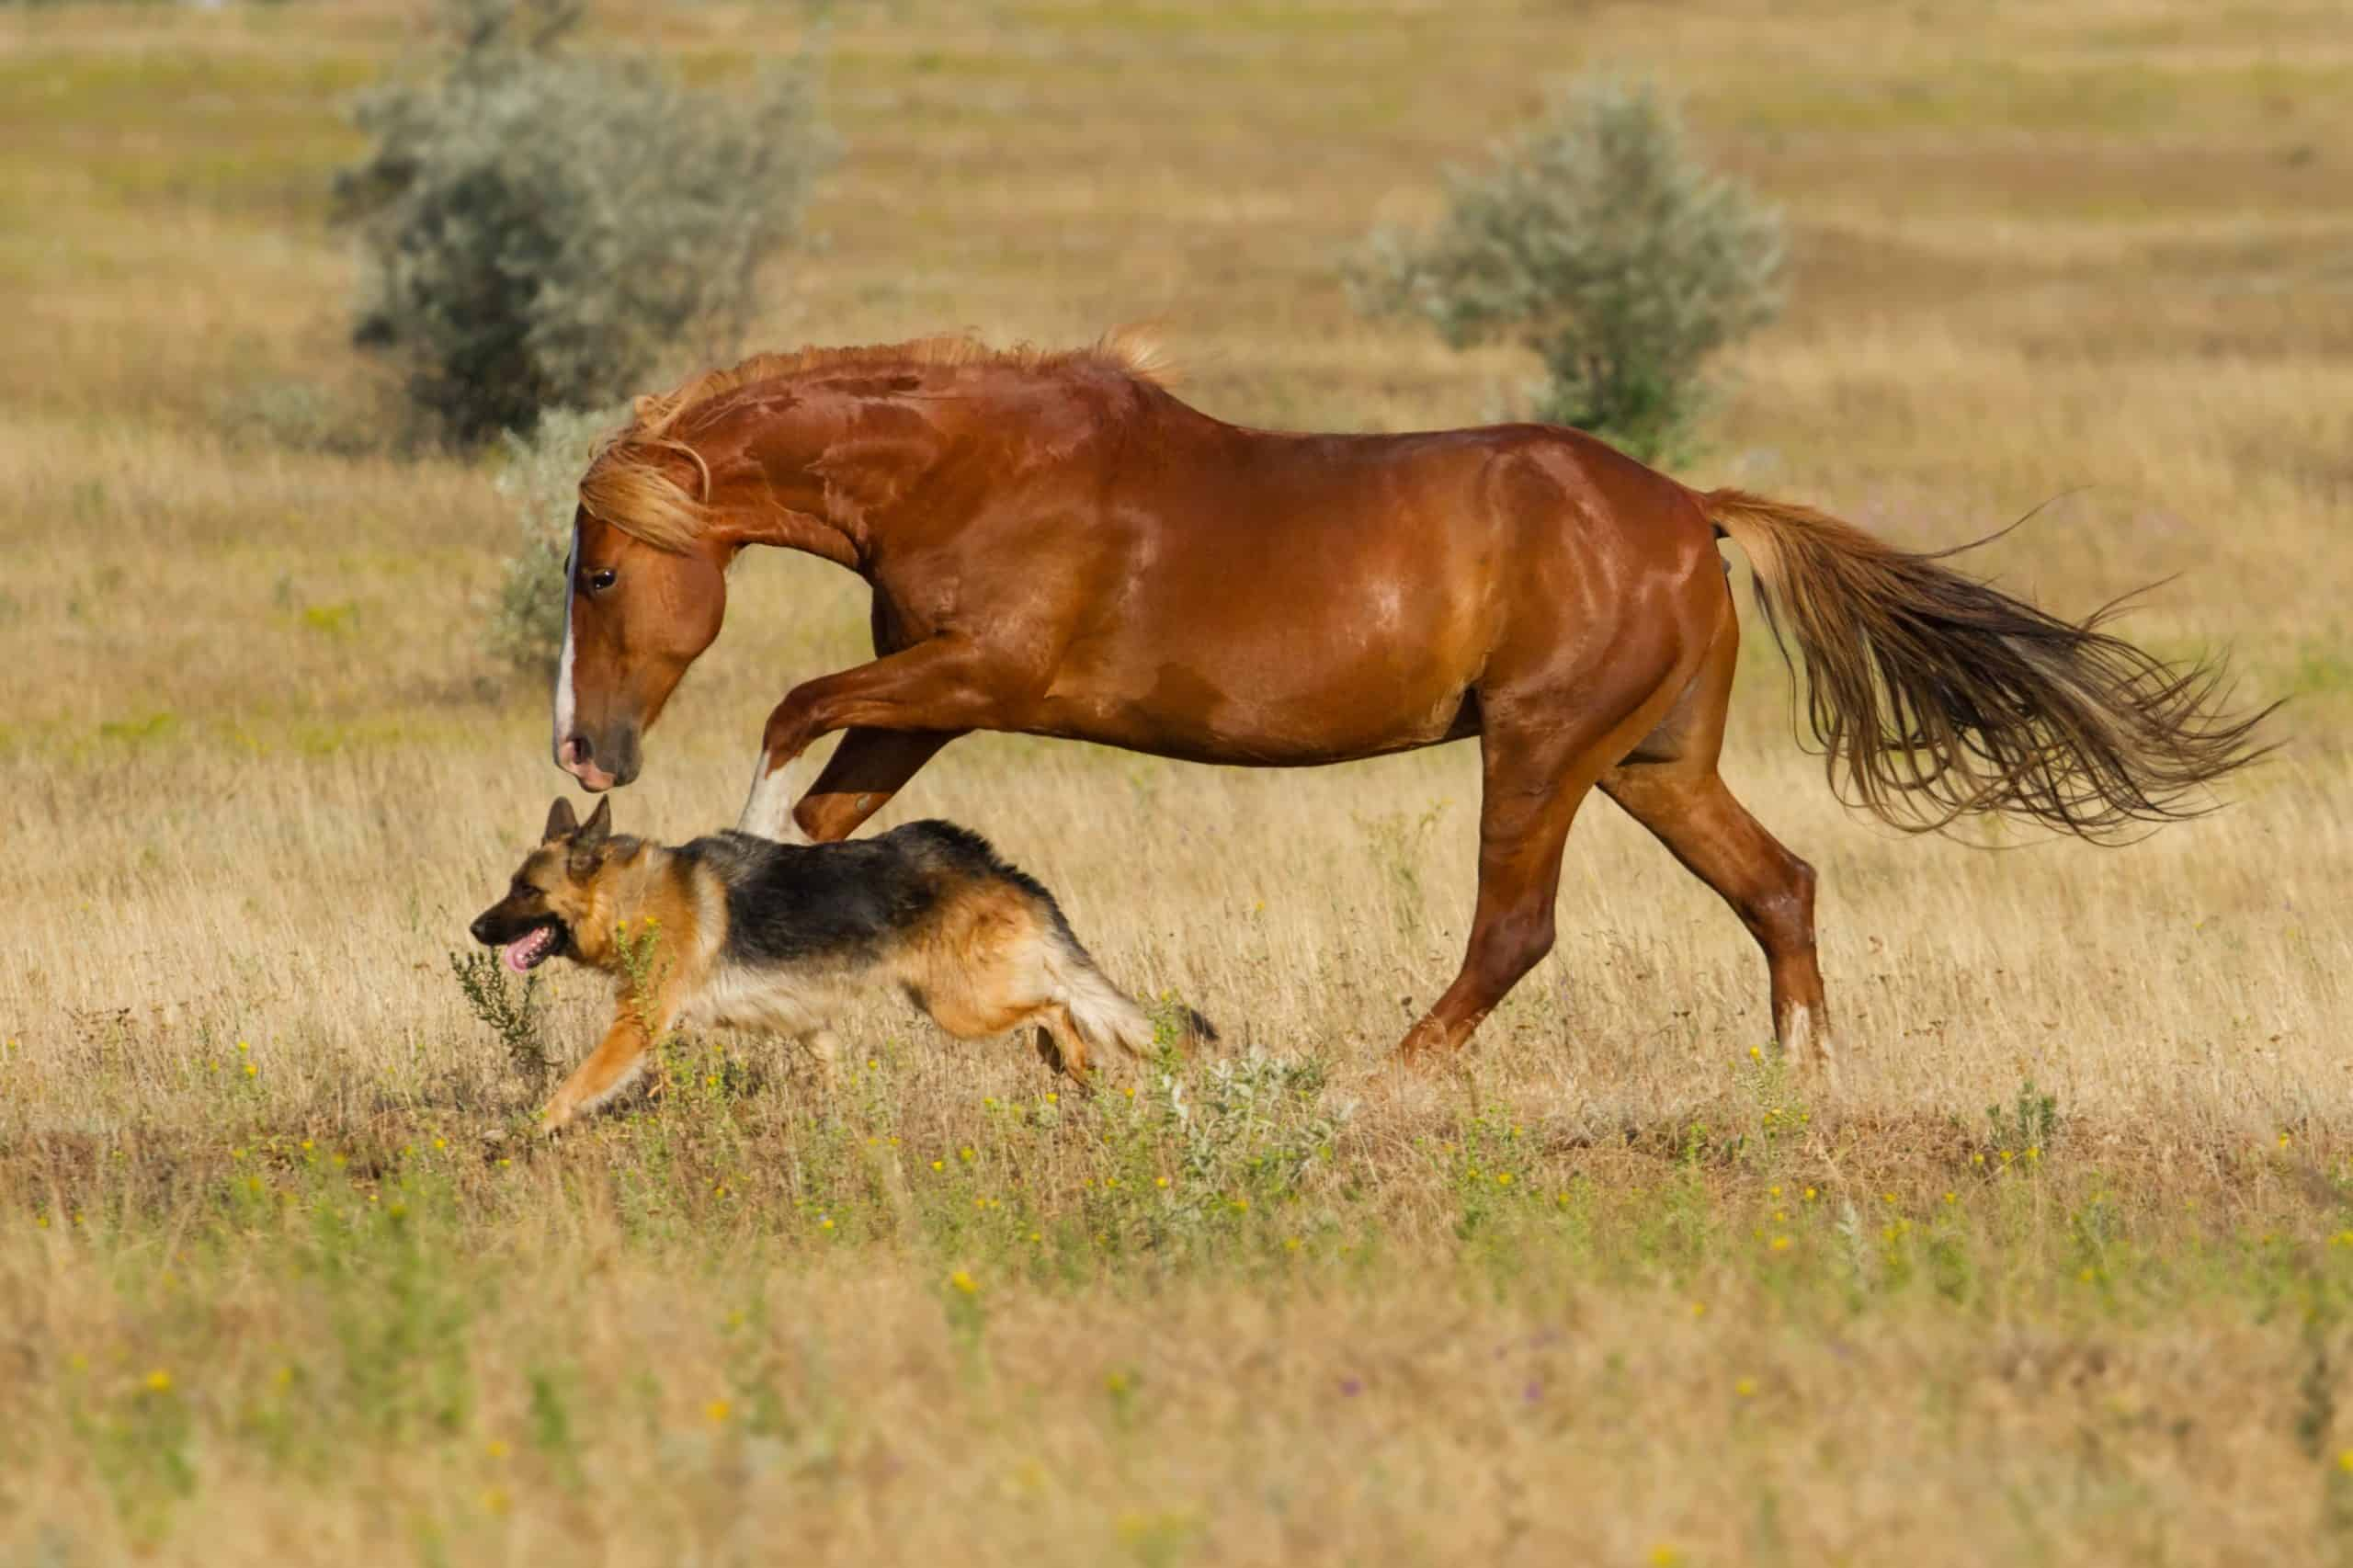 Red horse and dog play in the meadow